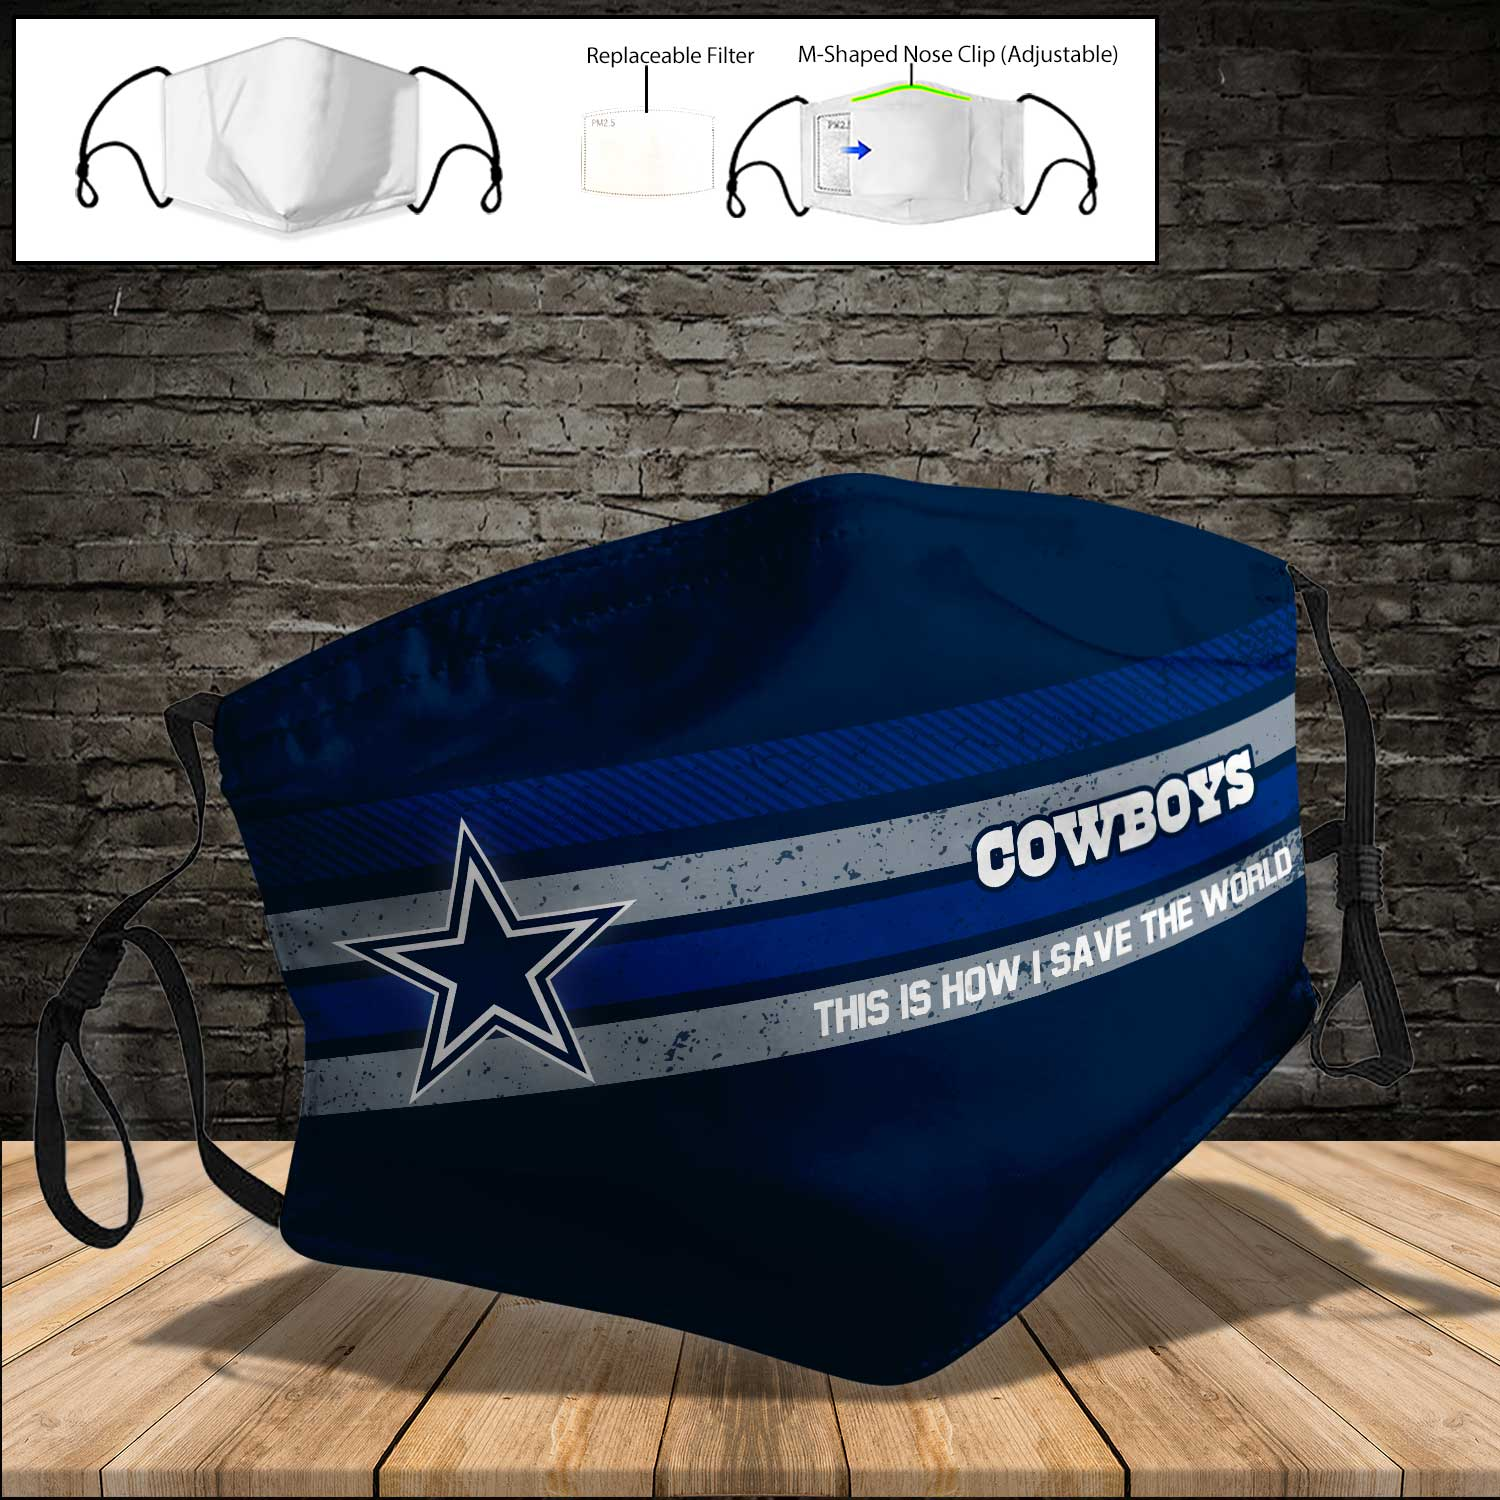 Dallas cowboys this is how i save the world full printing face mask 3